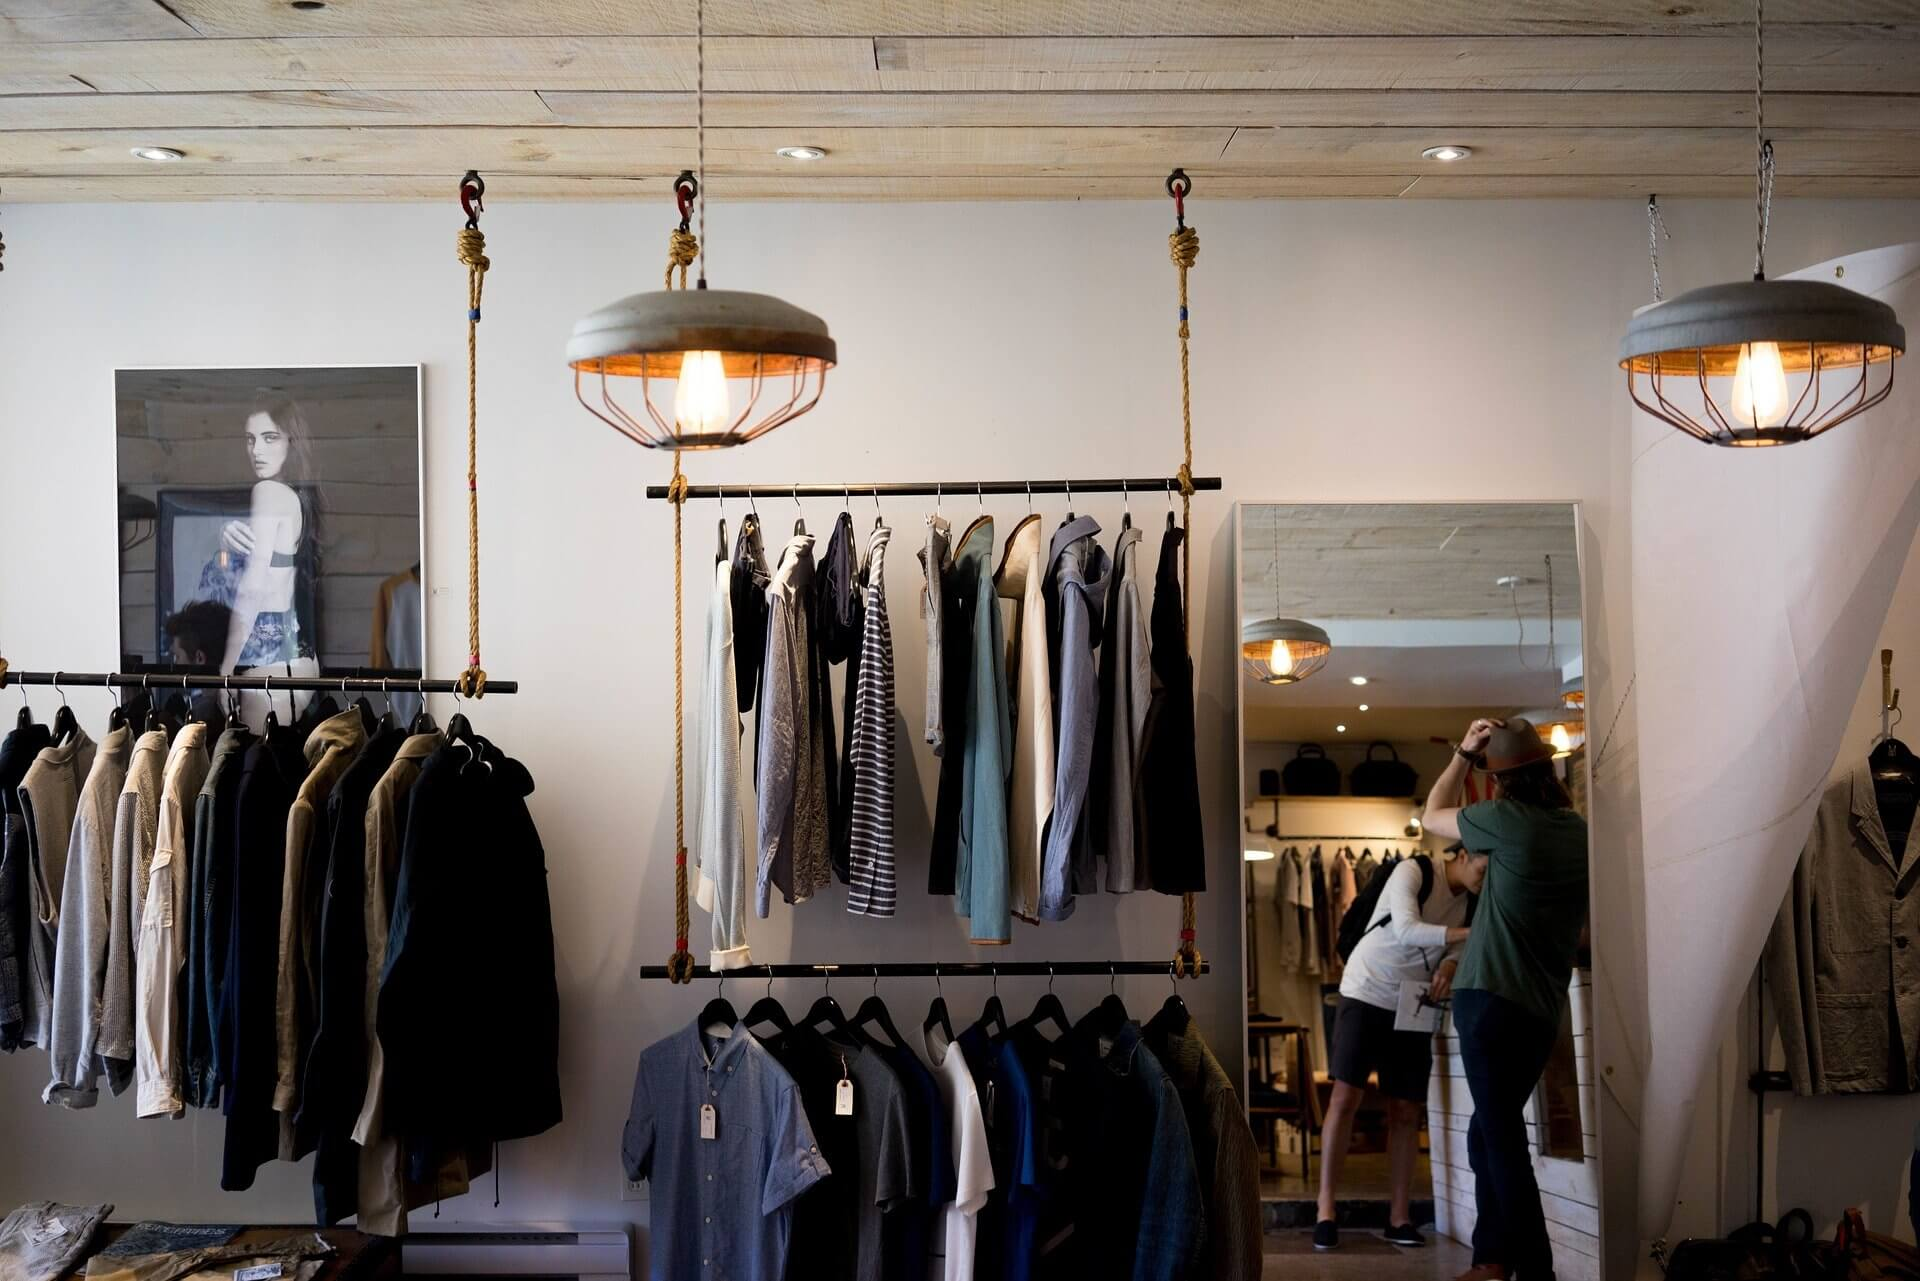 Jeff Jinks Law - Indianapolis Real Estate Attorney - Picture of Inside a Clothing Store